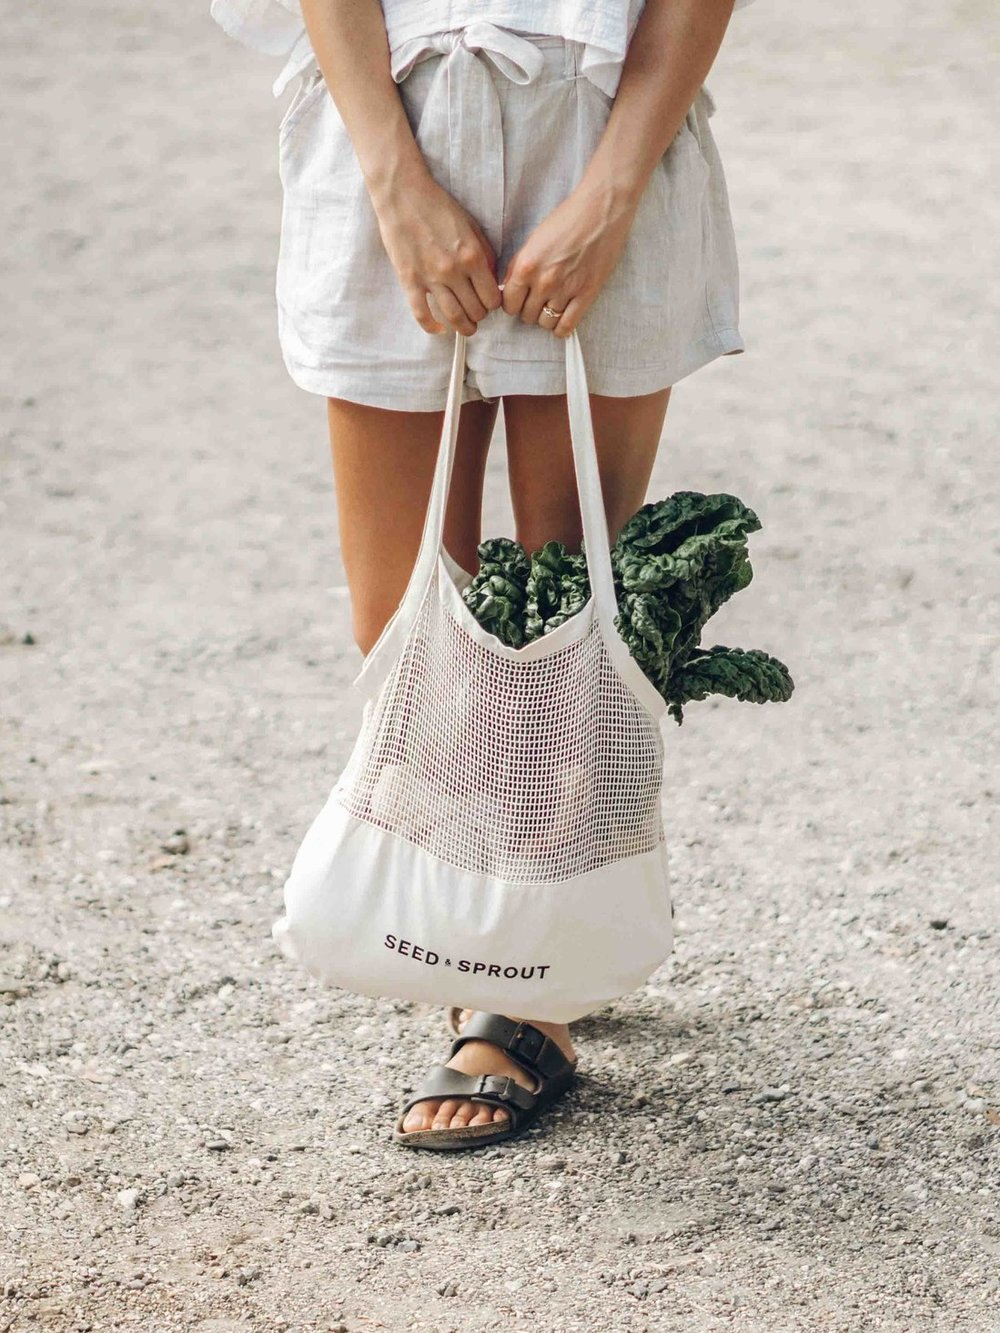 Keira-Mason-Seed-and-sprout-walking-with-white-bag.jpg